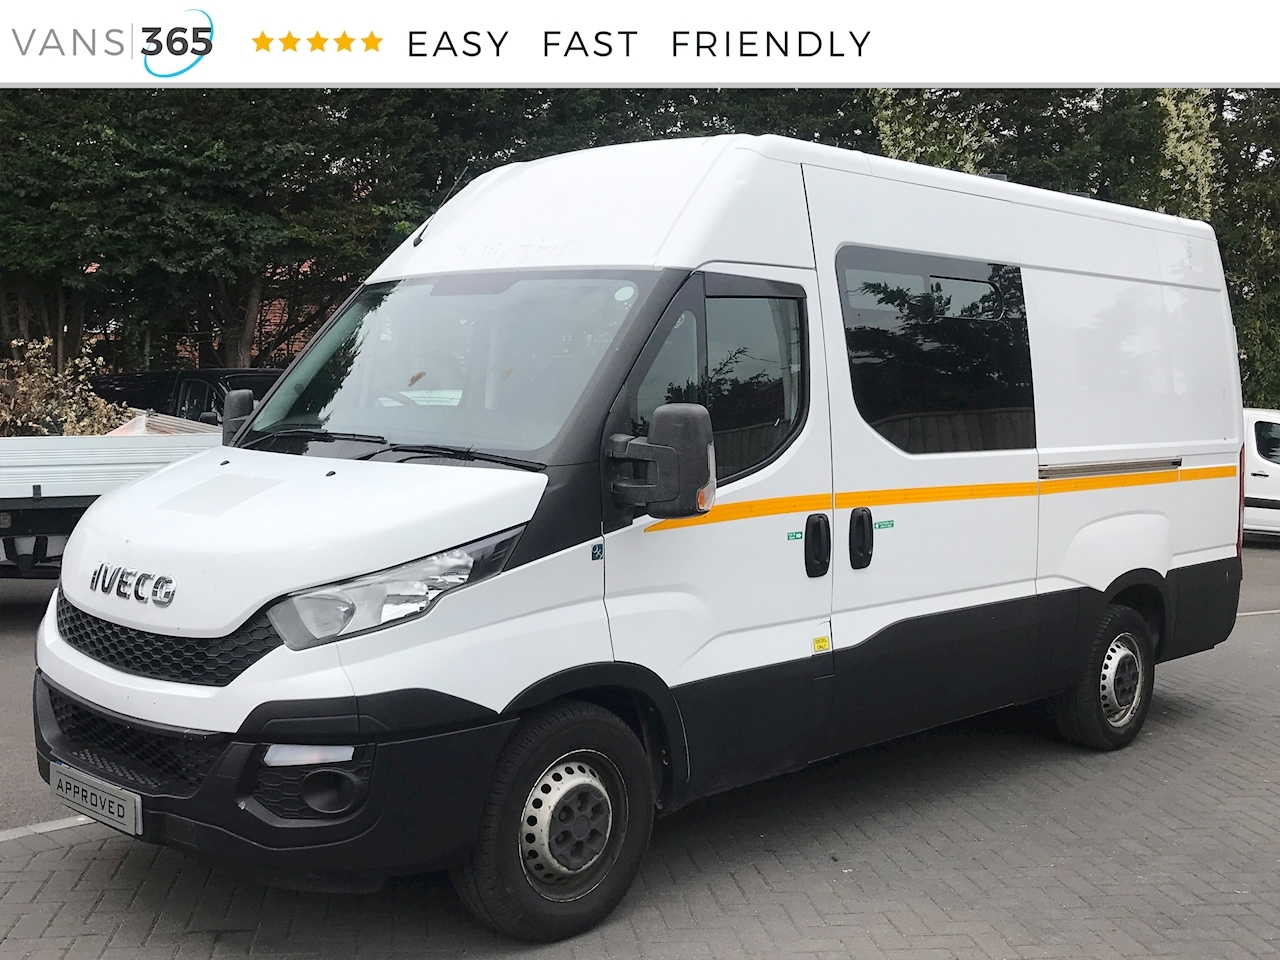 Used 2015 Iveco Daily 2 3HPi 35S13v MWB Mess Van 2 3 5dr Panel Van